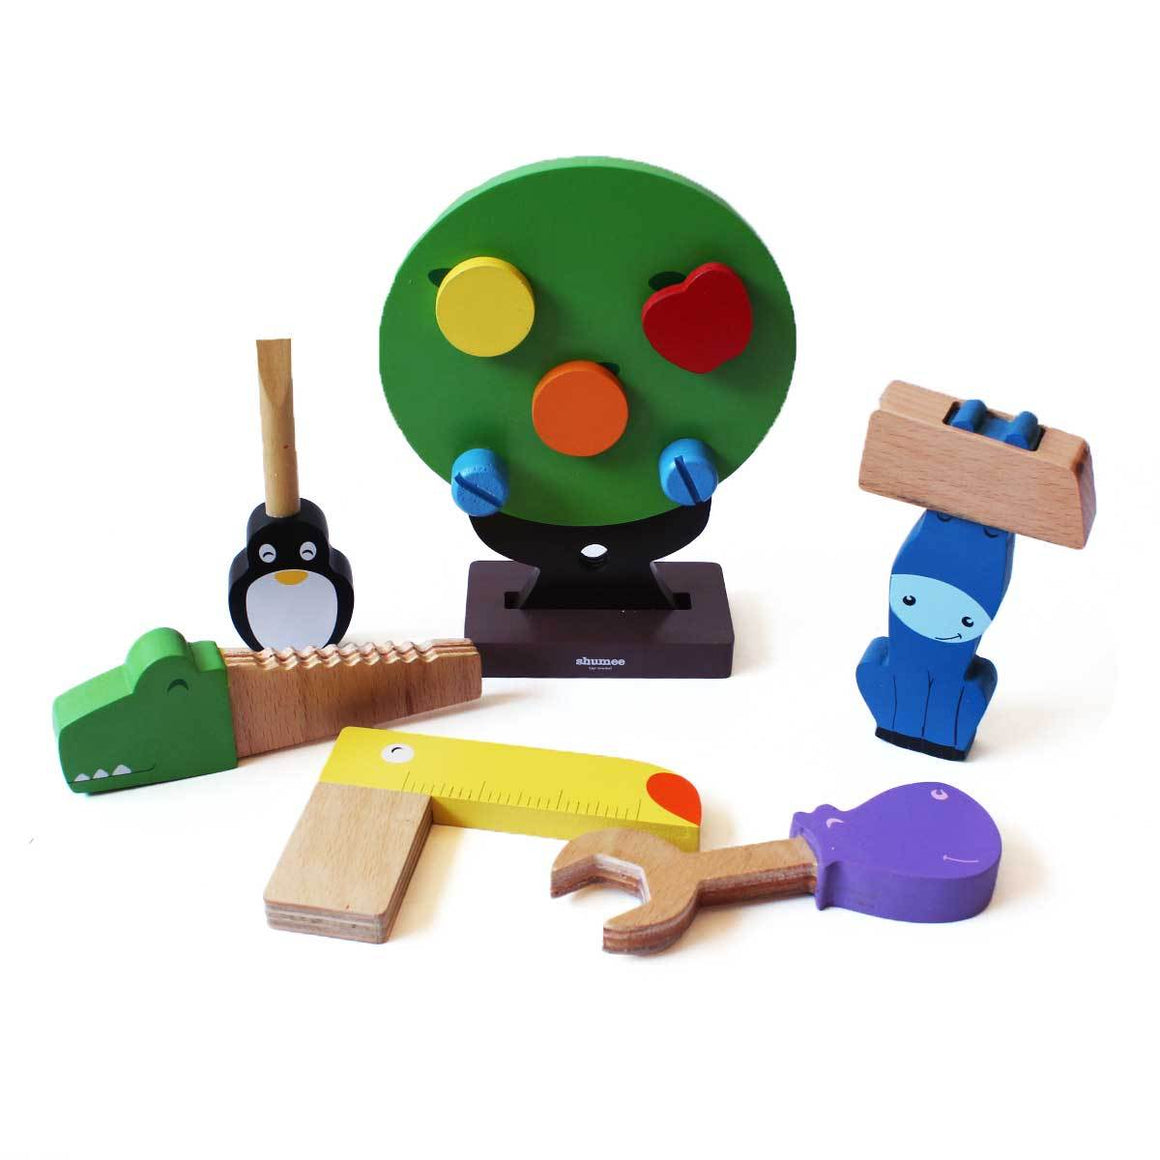 10% Off | Wooden Toy Tools Set for Toddlers Online - Shumee